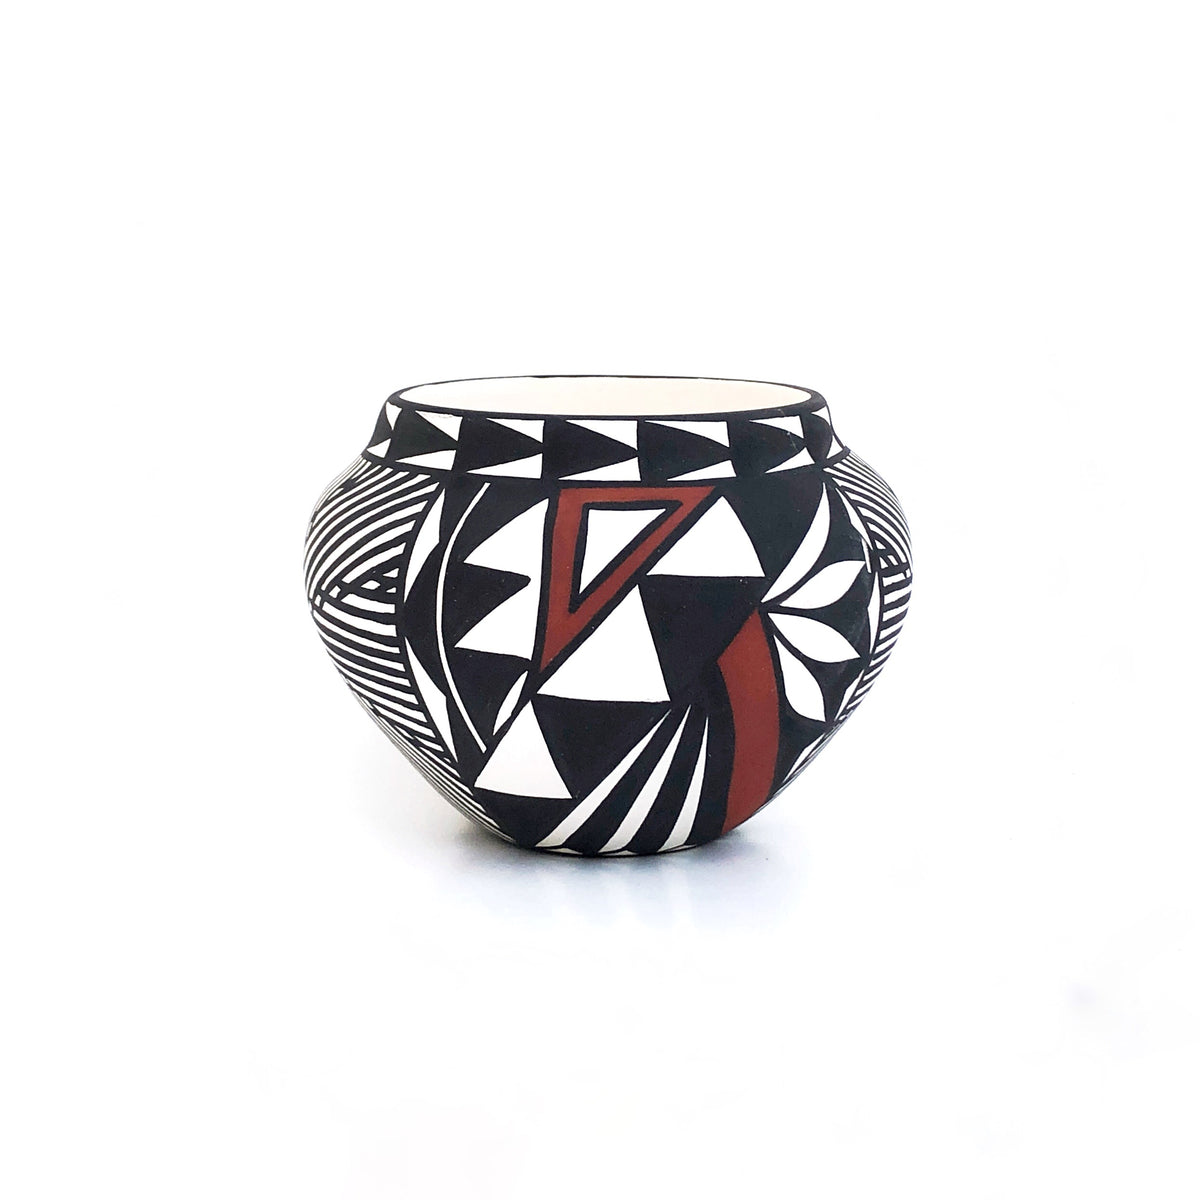 Small Handpainted Acoma Pot by Nicole Victorino